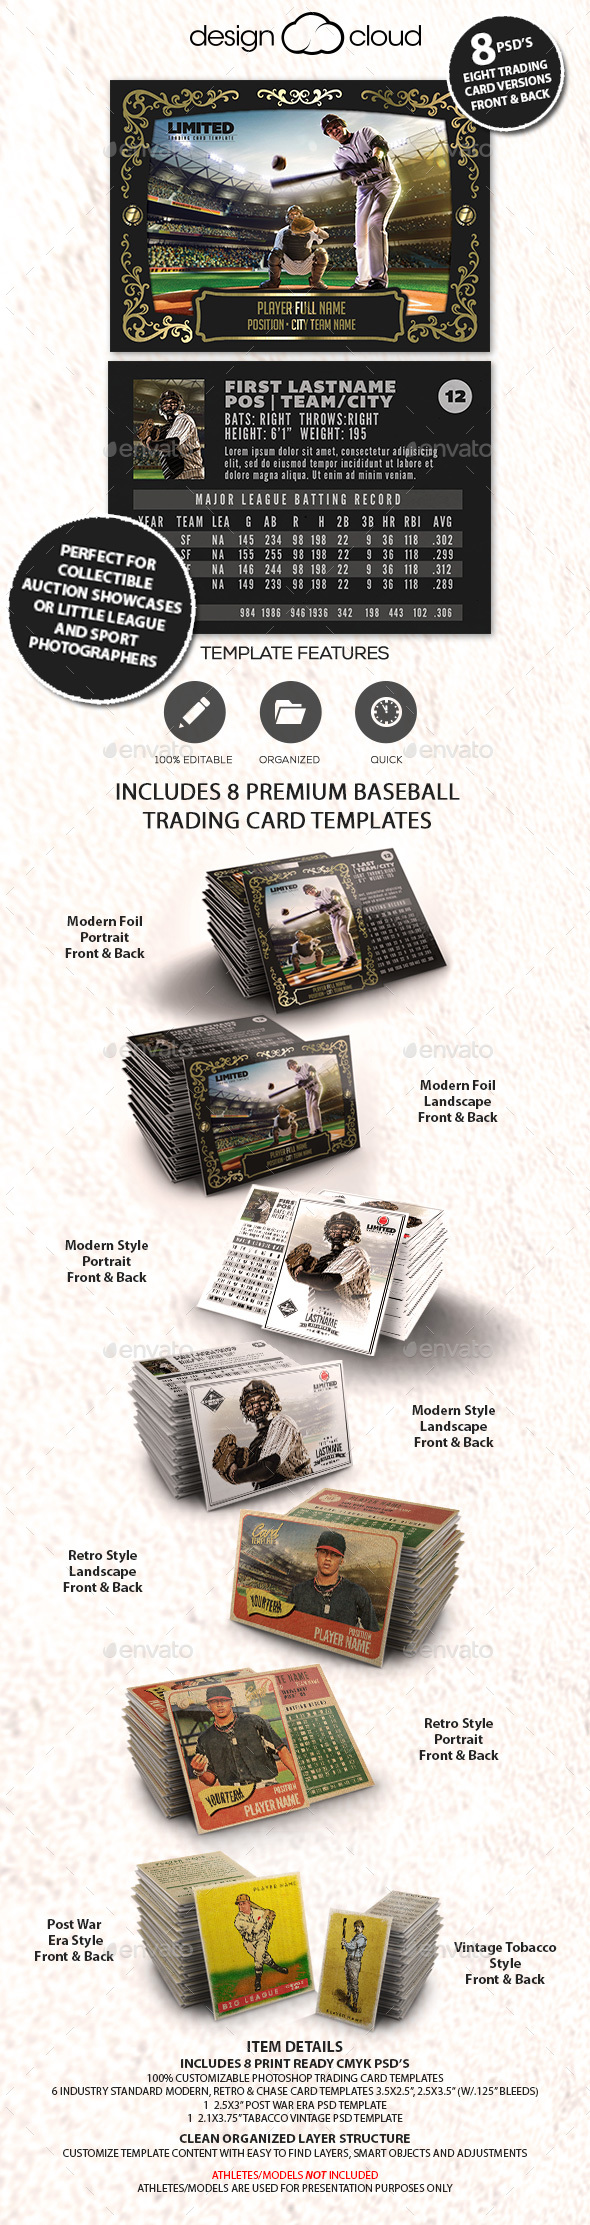 8 Premium Baseball Trading Card Templates Collection - Miscellaneous Print Templates